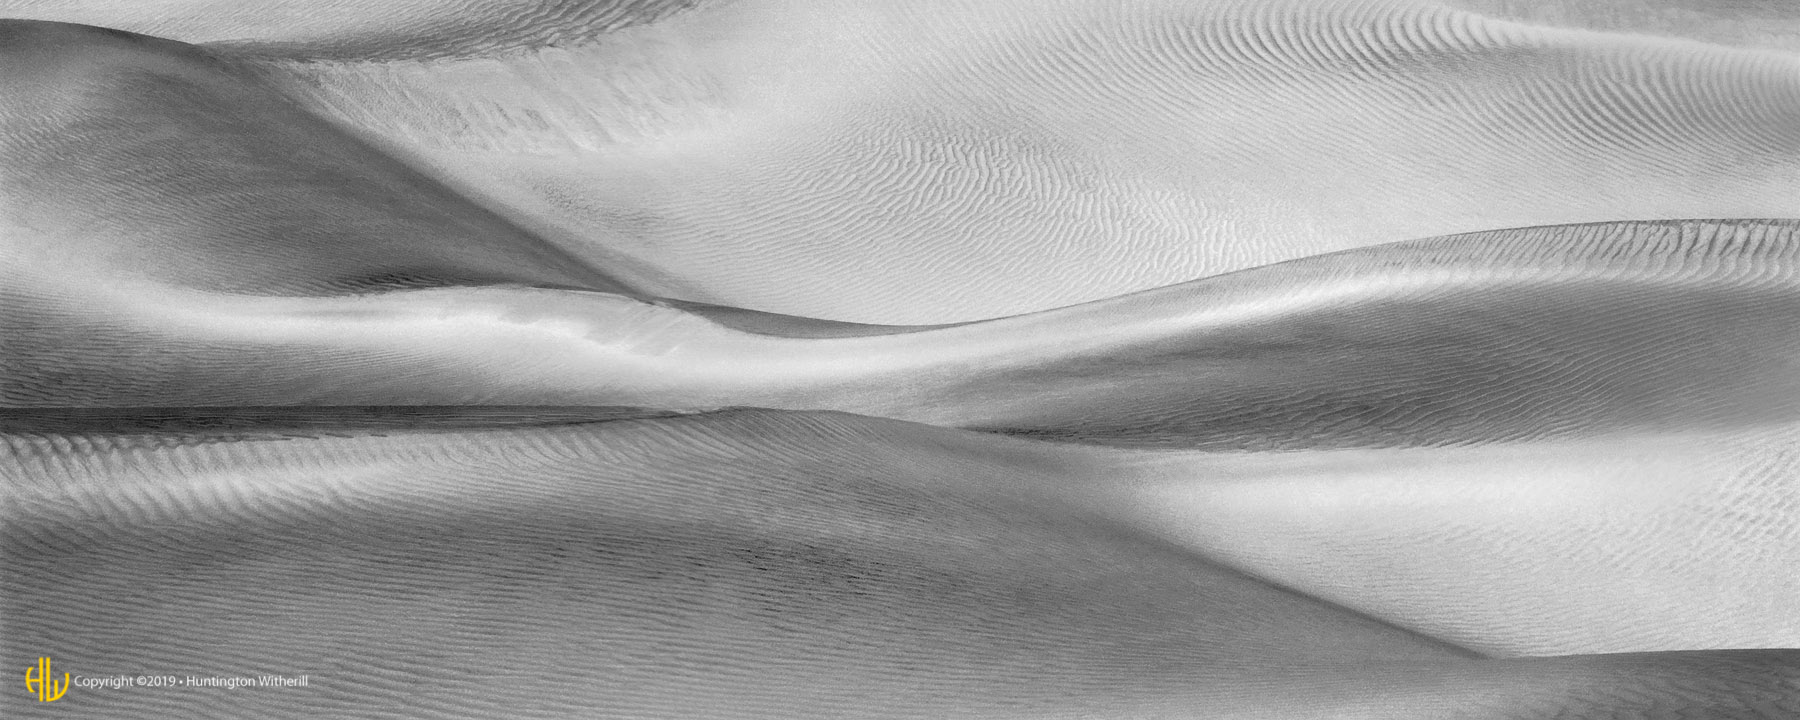 Dune Form, Death Valley, CA, 1994